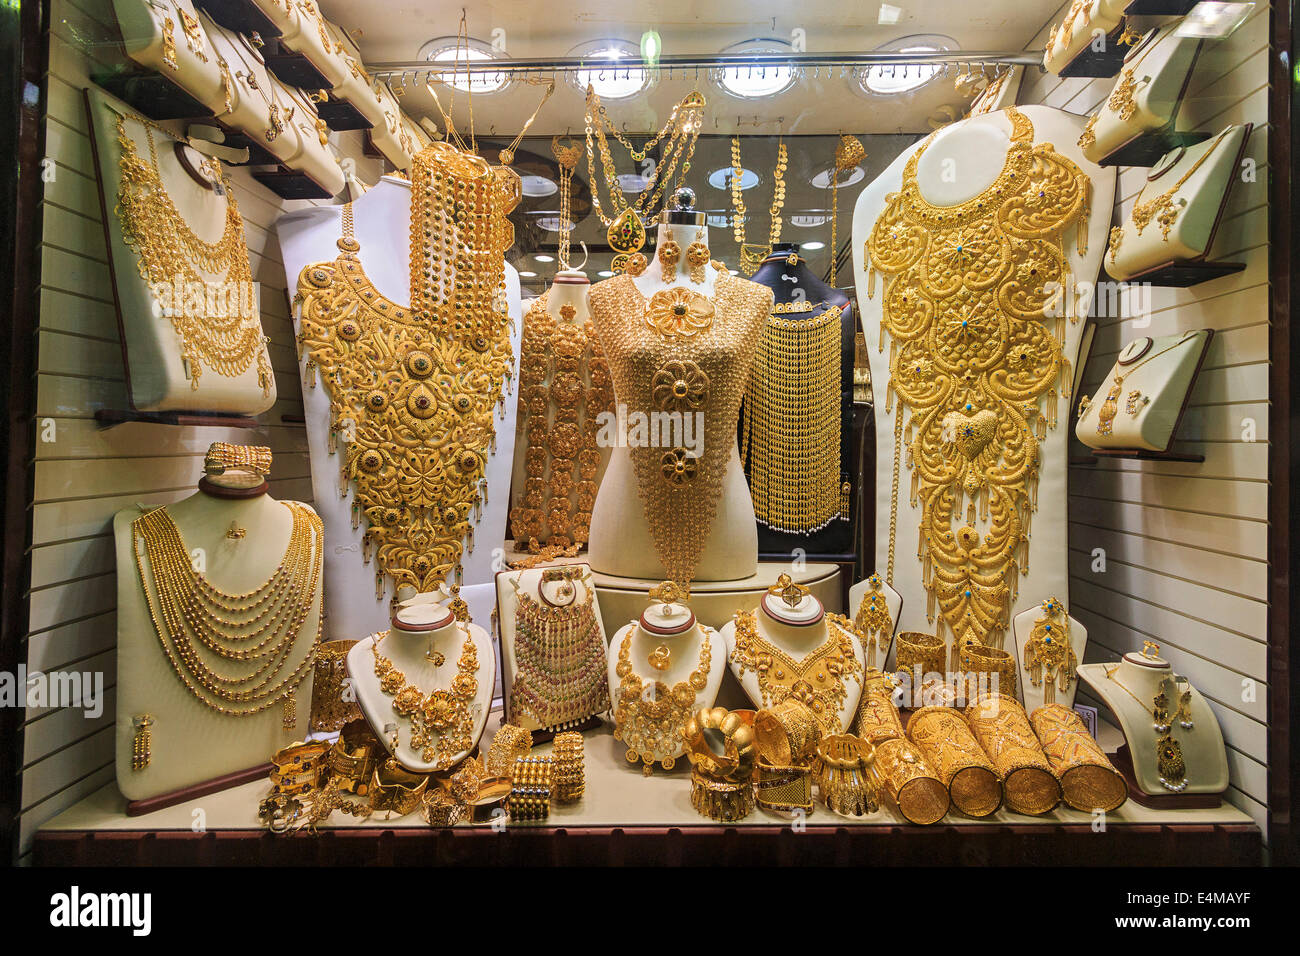 Gold jewelry in Dubai's gold souk. The gold souk consists of over 300 retailers that trade almost exclusively - Stock Image